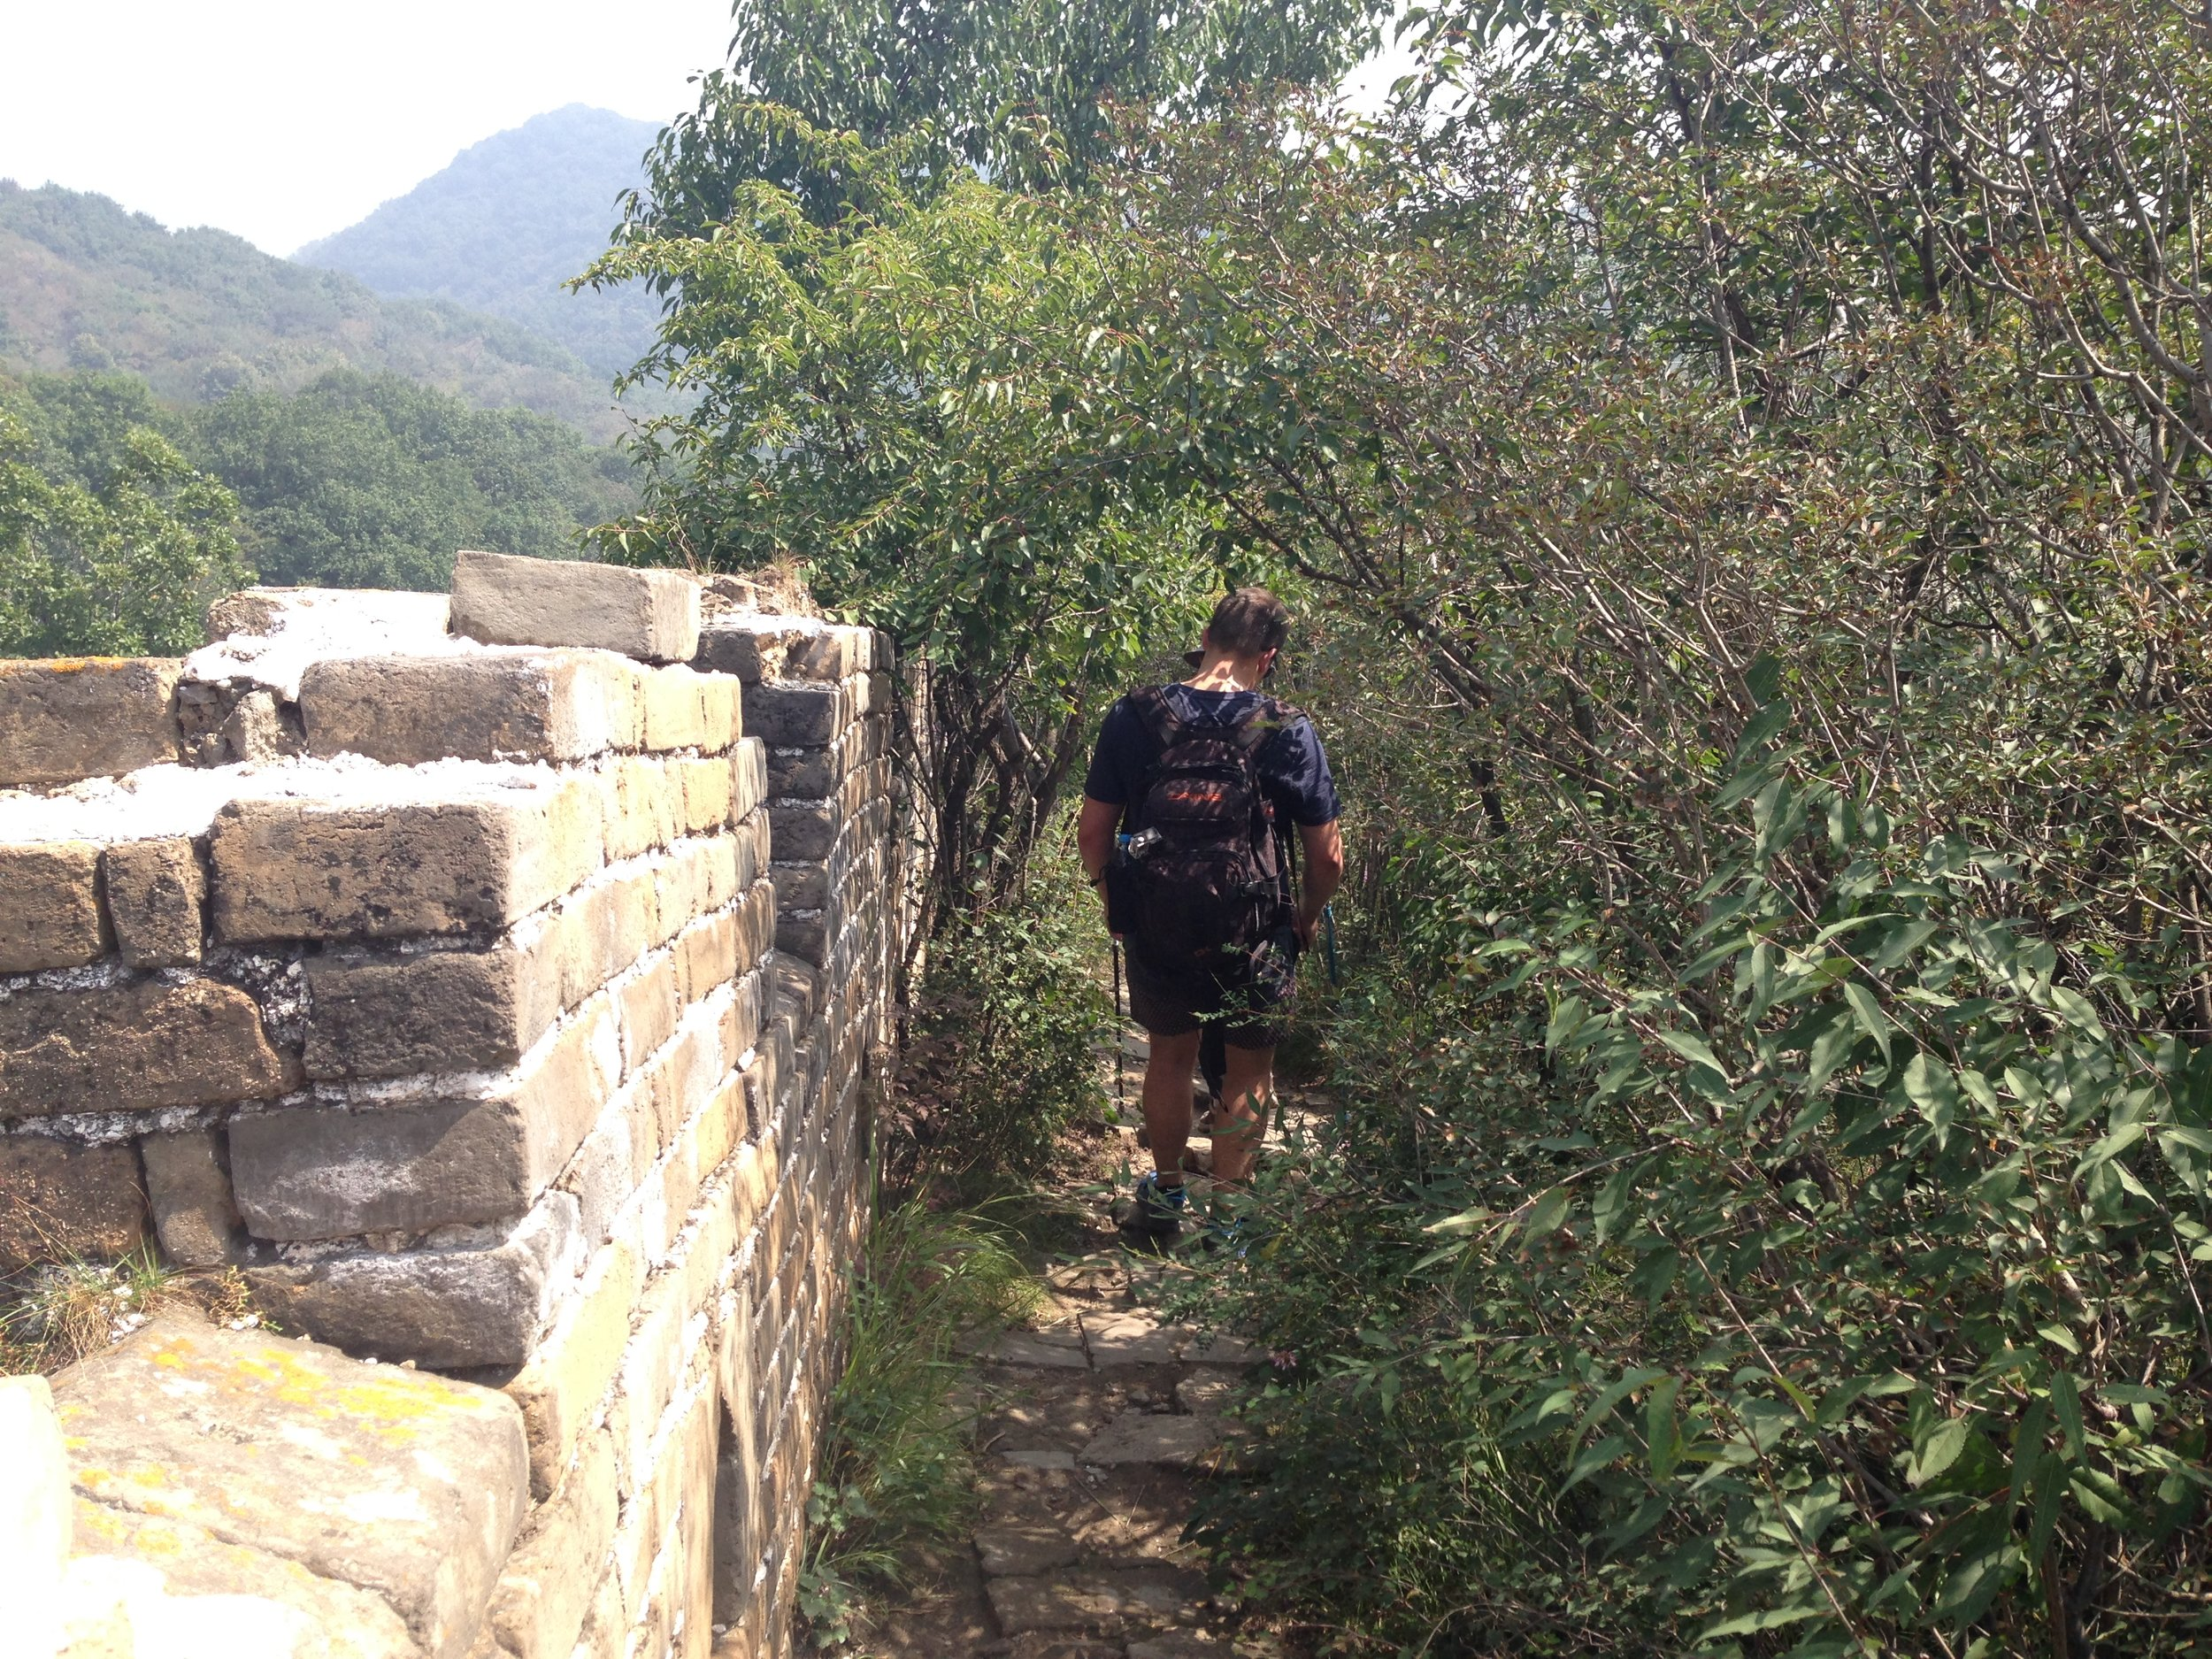 Jiankou: it's called 'wild' wall for a reason - it's unrestored and trees are unkept!